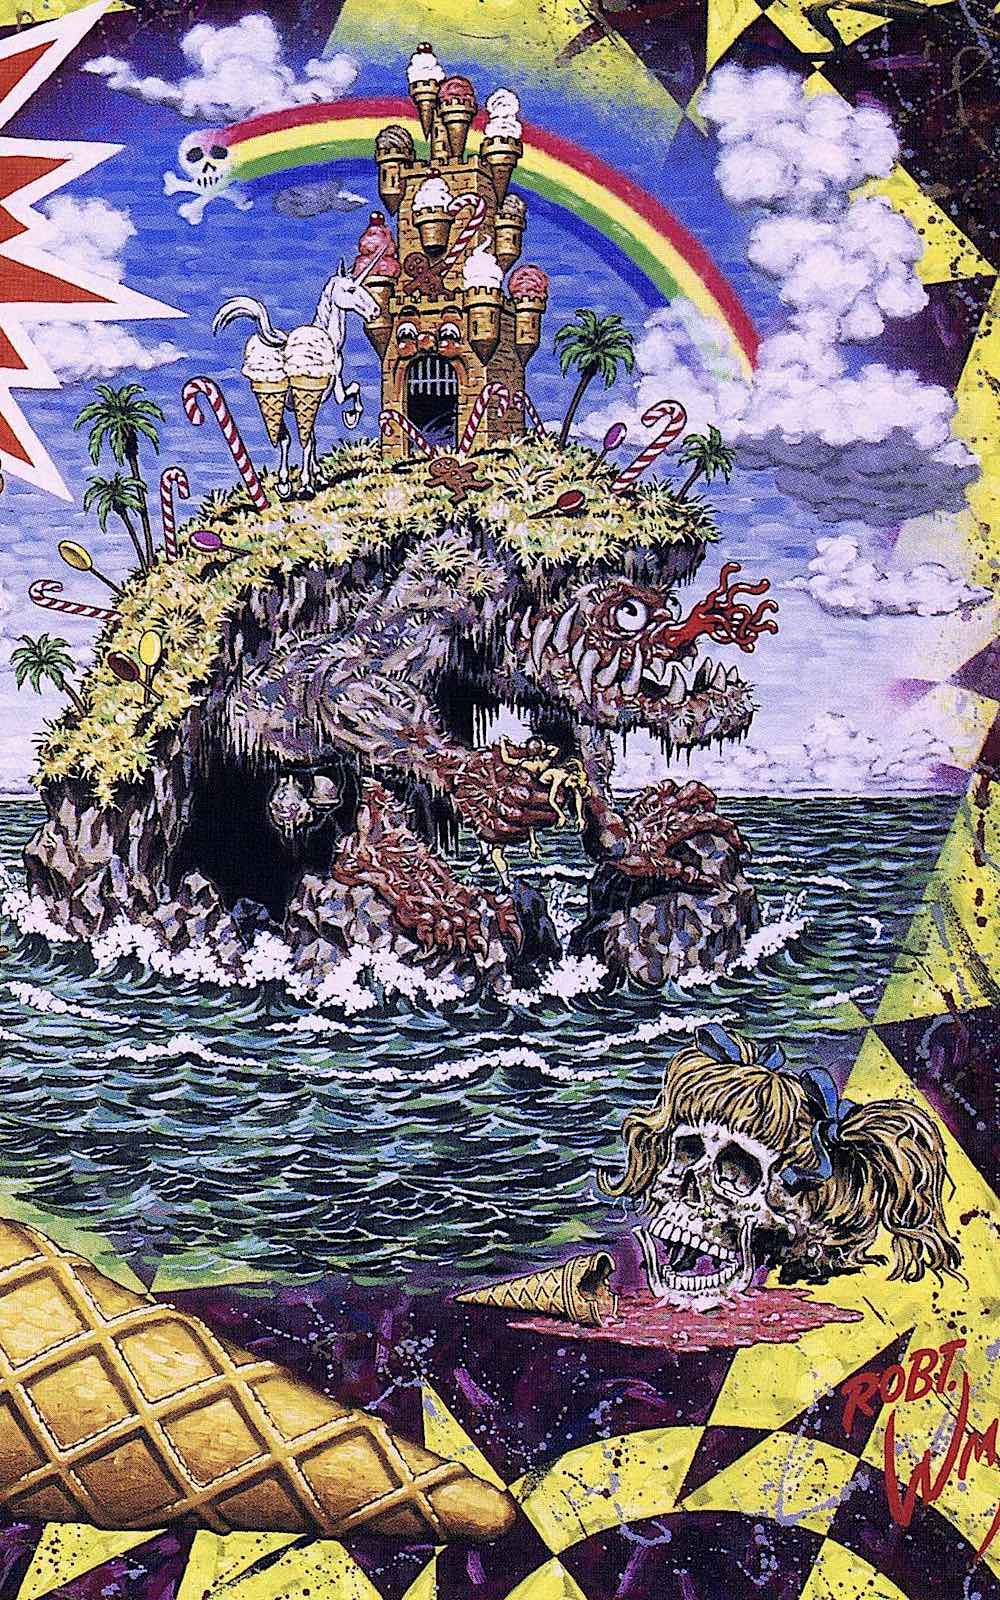 a detail from a Robert Williams painting, a monster island